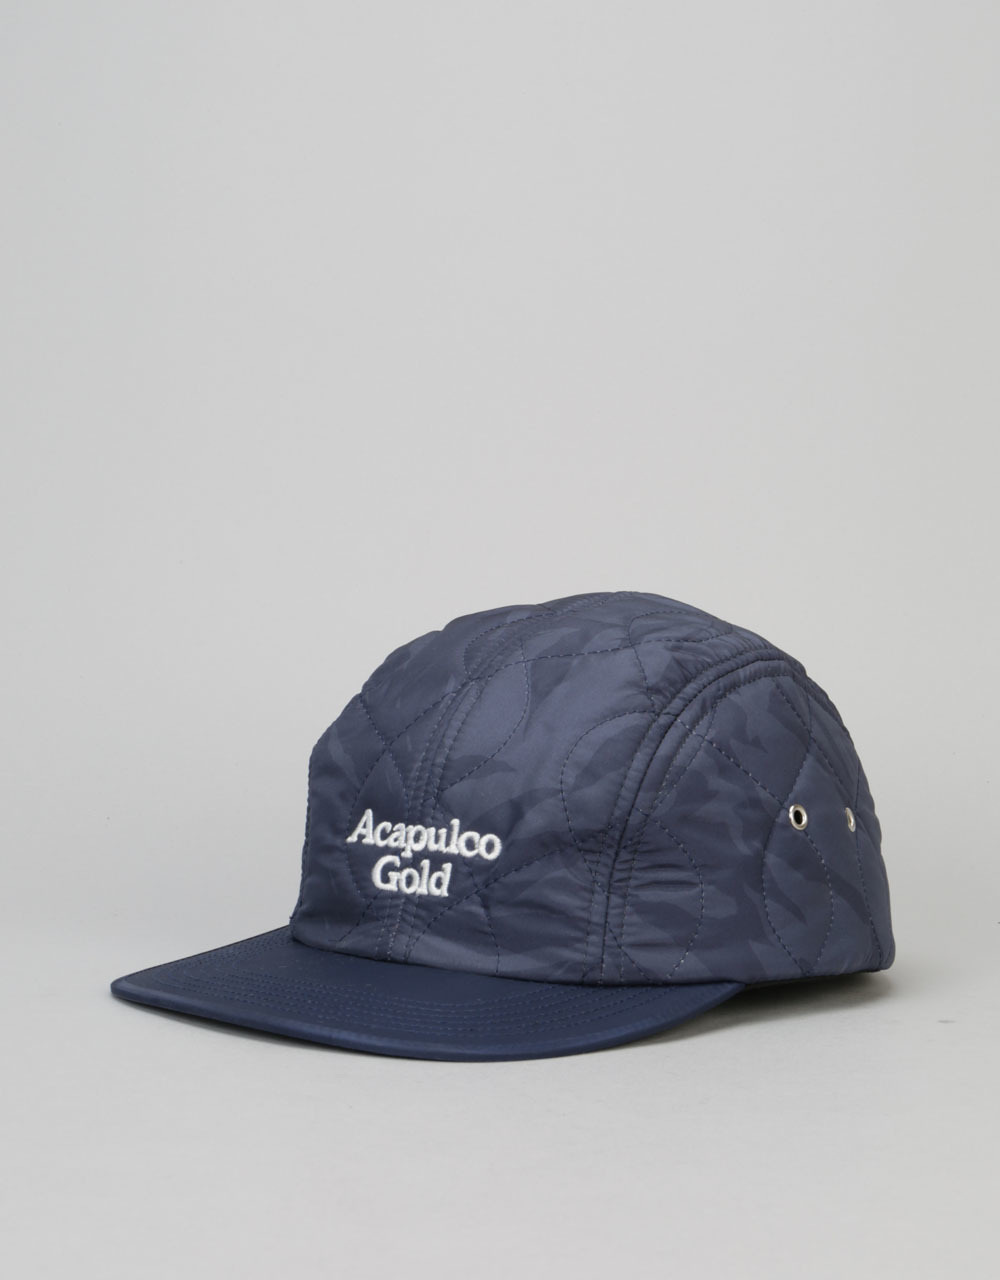 d97c17046b Acapulco Gold Outland Quilted Sport 5 Panel Cap - Navy Camo